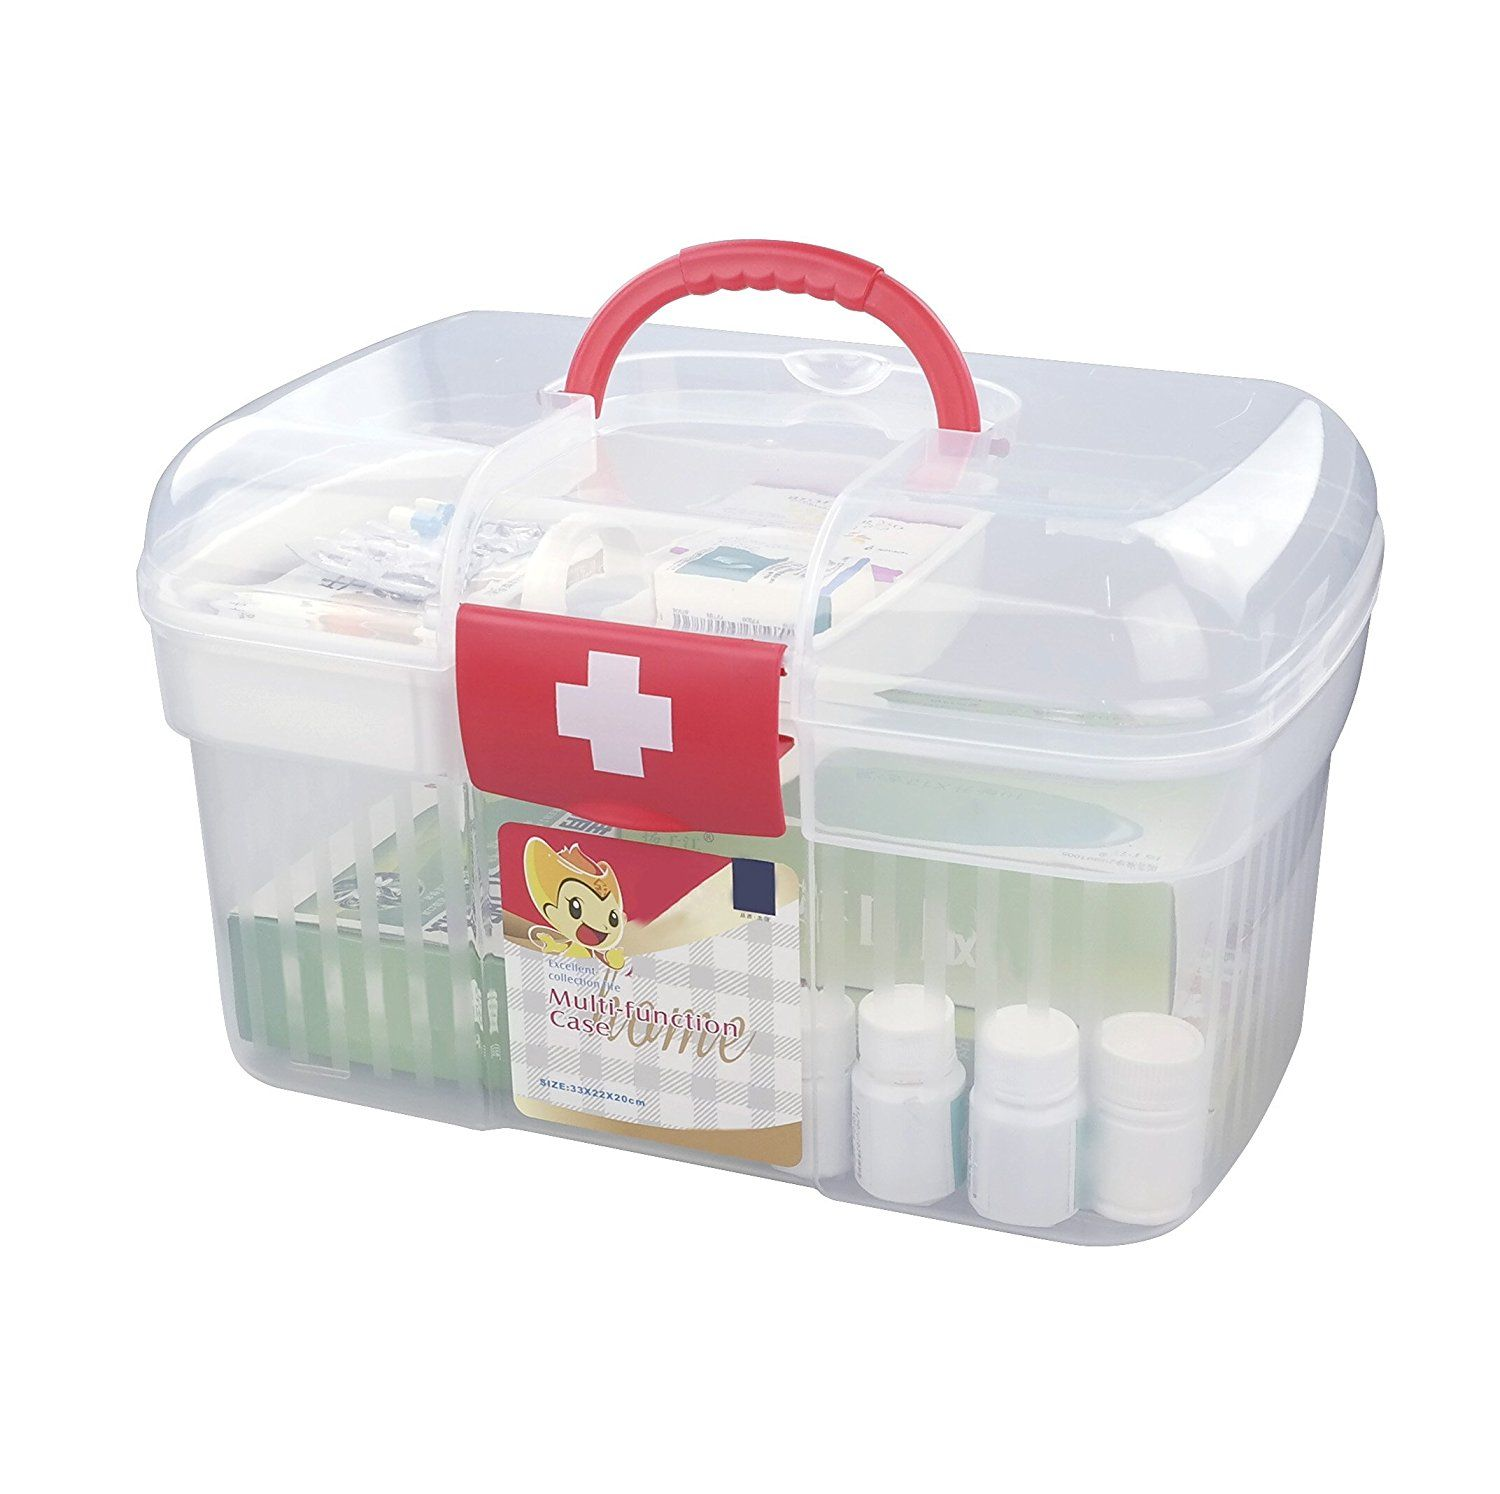 Amazon Com Anbers Home First Aid Clear Container Bin X2f Family Emergency Kit Storage Box X2f Detach With Images Family Emergency Kit Emergency Kit Family Emergency